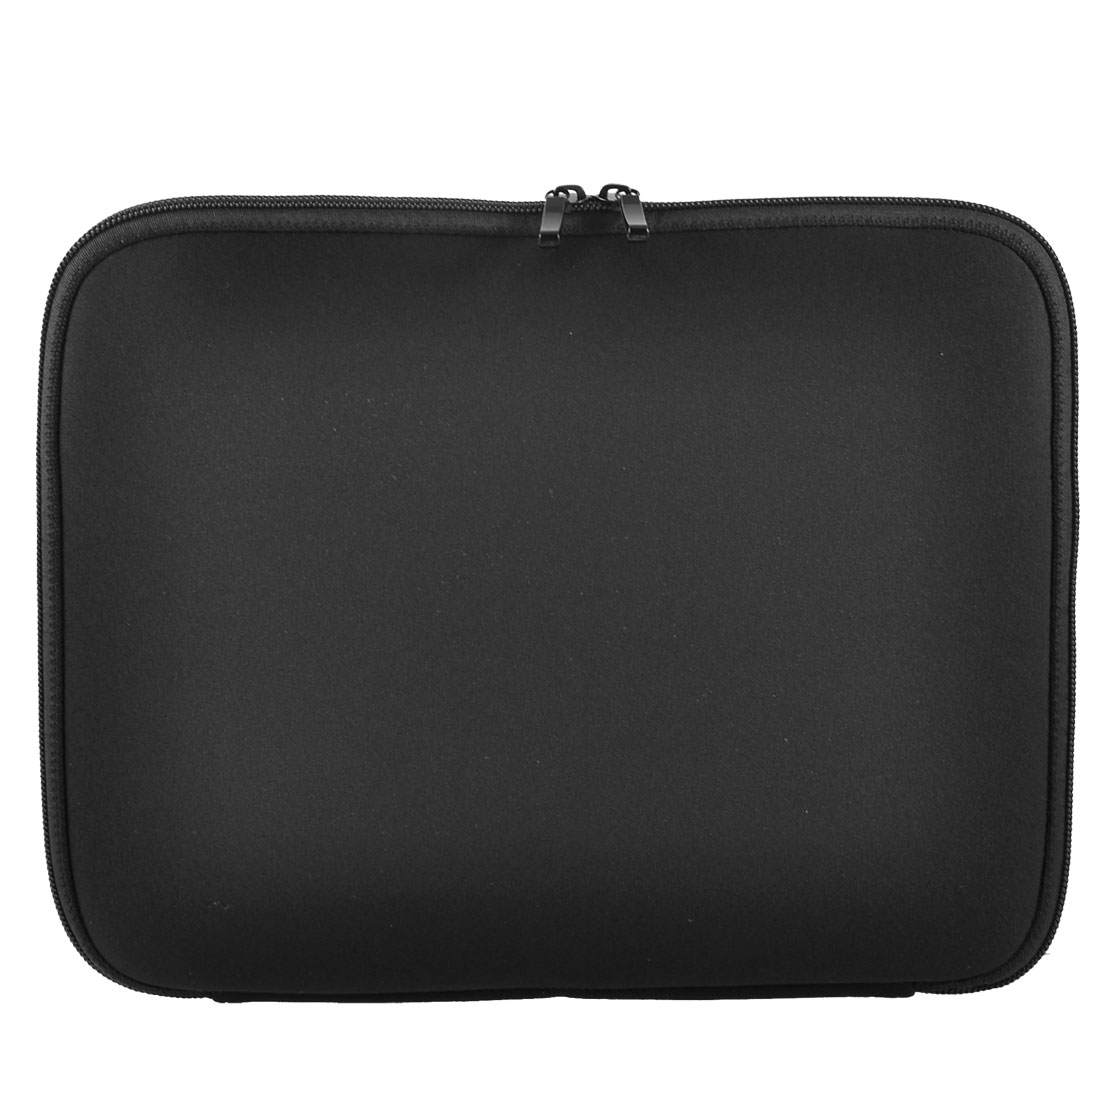 "13"" 13.3"" Laptop Zip Up Black Neoprene Sleeve Bag Case Pouch Cover"